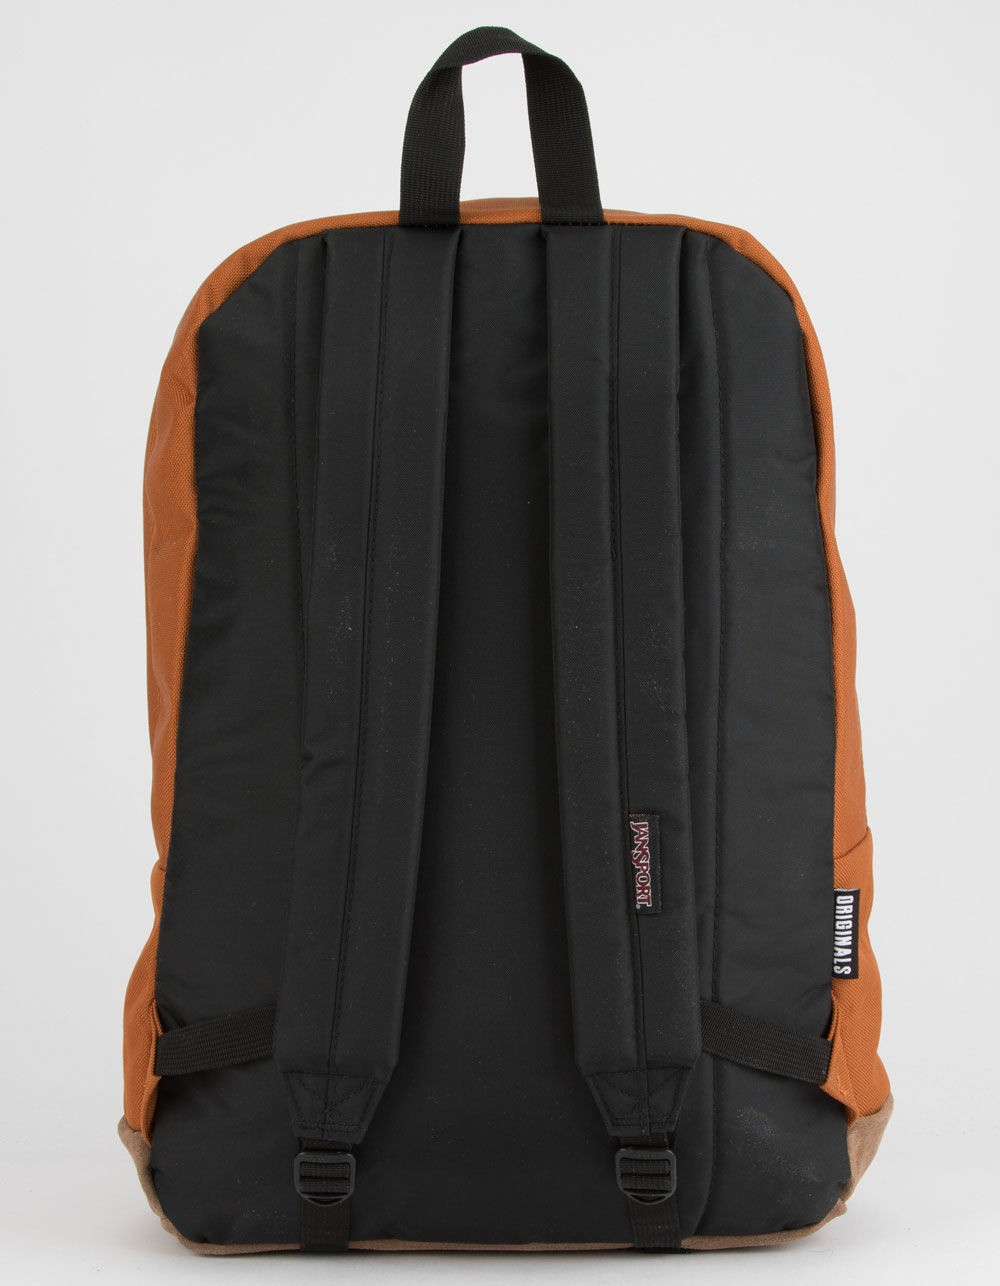 best price jansport right pack brown canyon backpack last chance limited sale